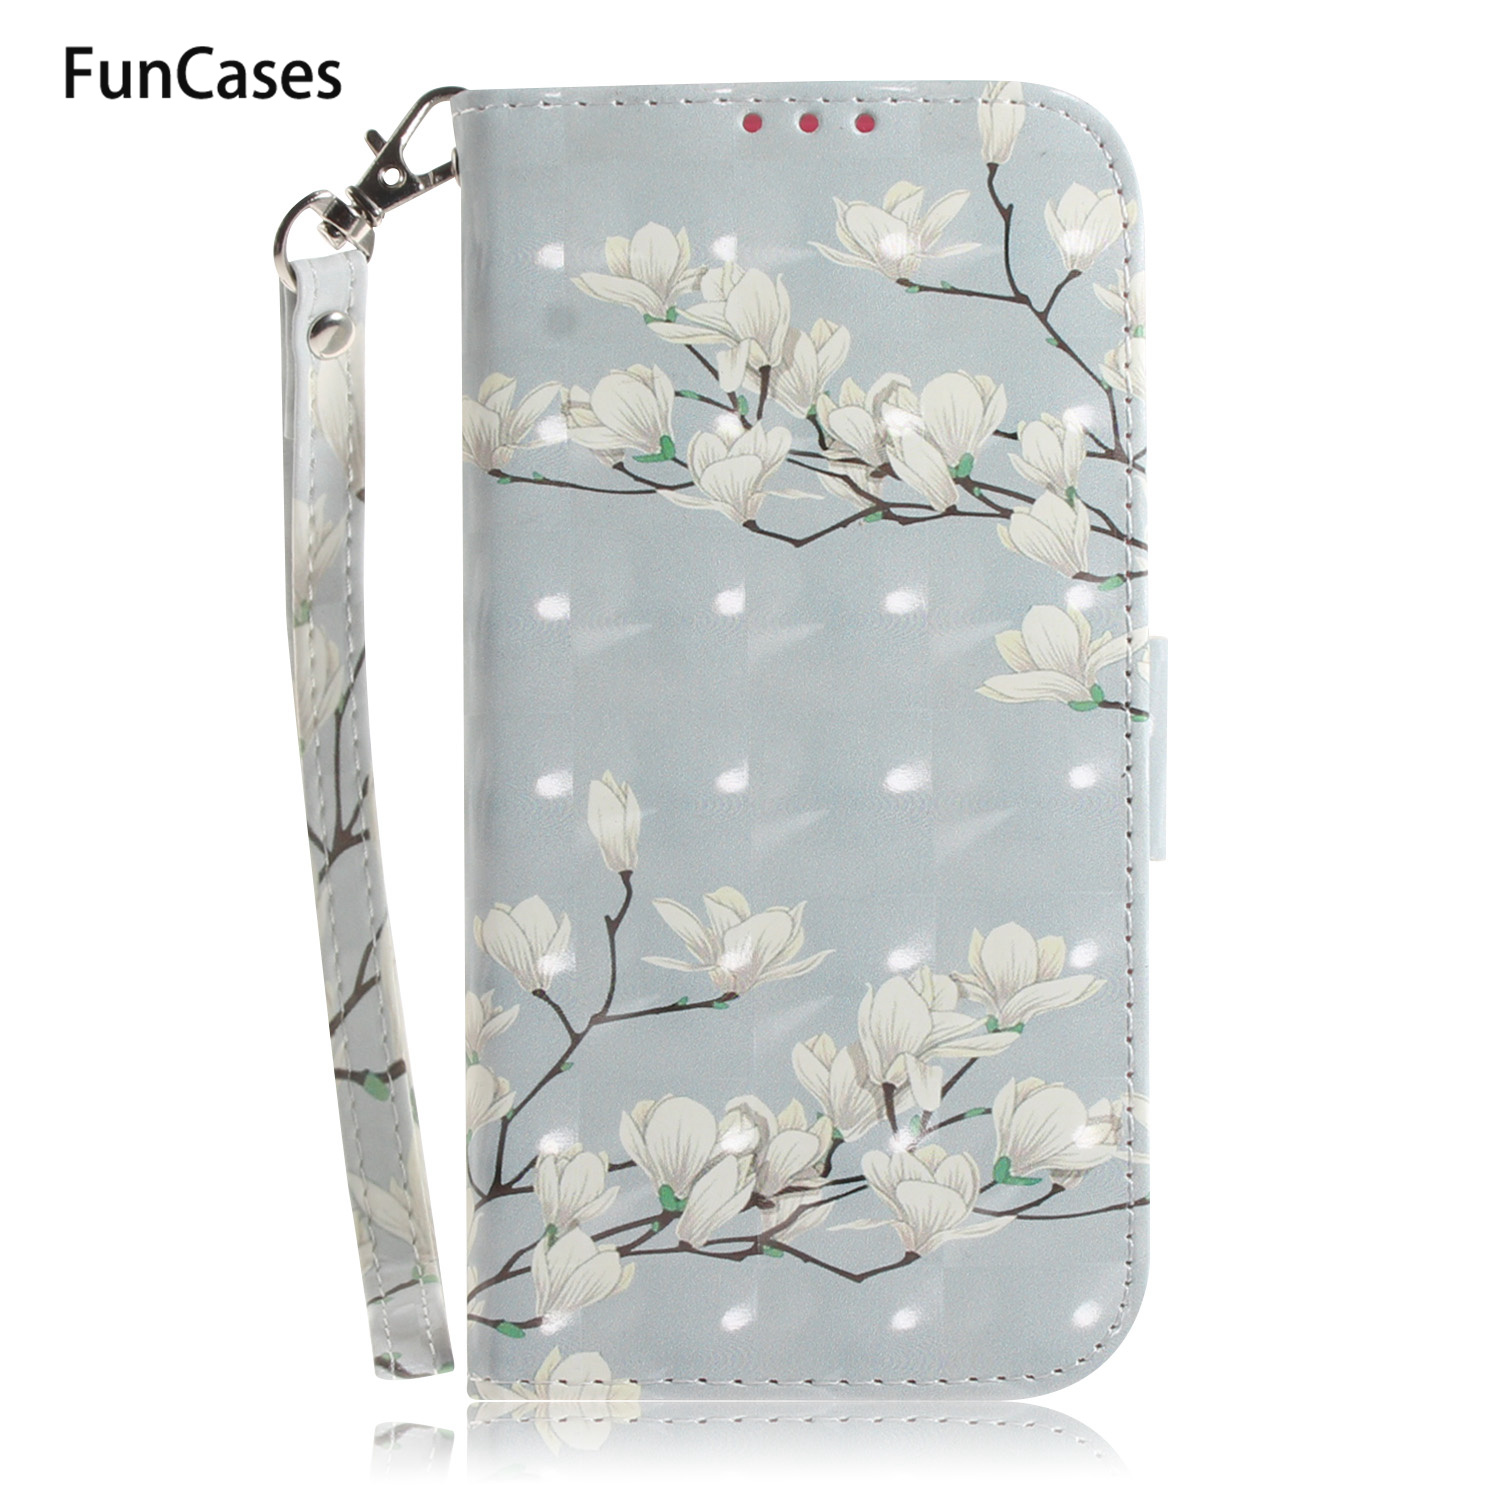 Leopard 3D Book Phone Case For accesorios <font><b>Huawei</b></font> P30 sFor <font><b>Huawei</b></font> capa P20 Lite Pro <font><b>Y5</b></font> <font><b>2018</b></font> Y6 Y9 2019 Movil Wallet Flip Case image